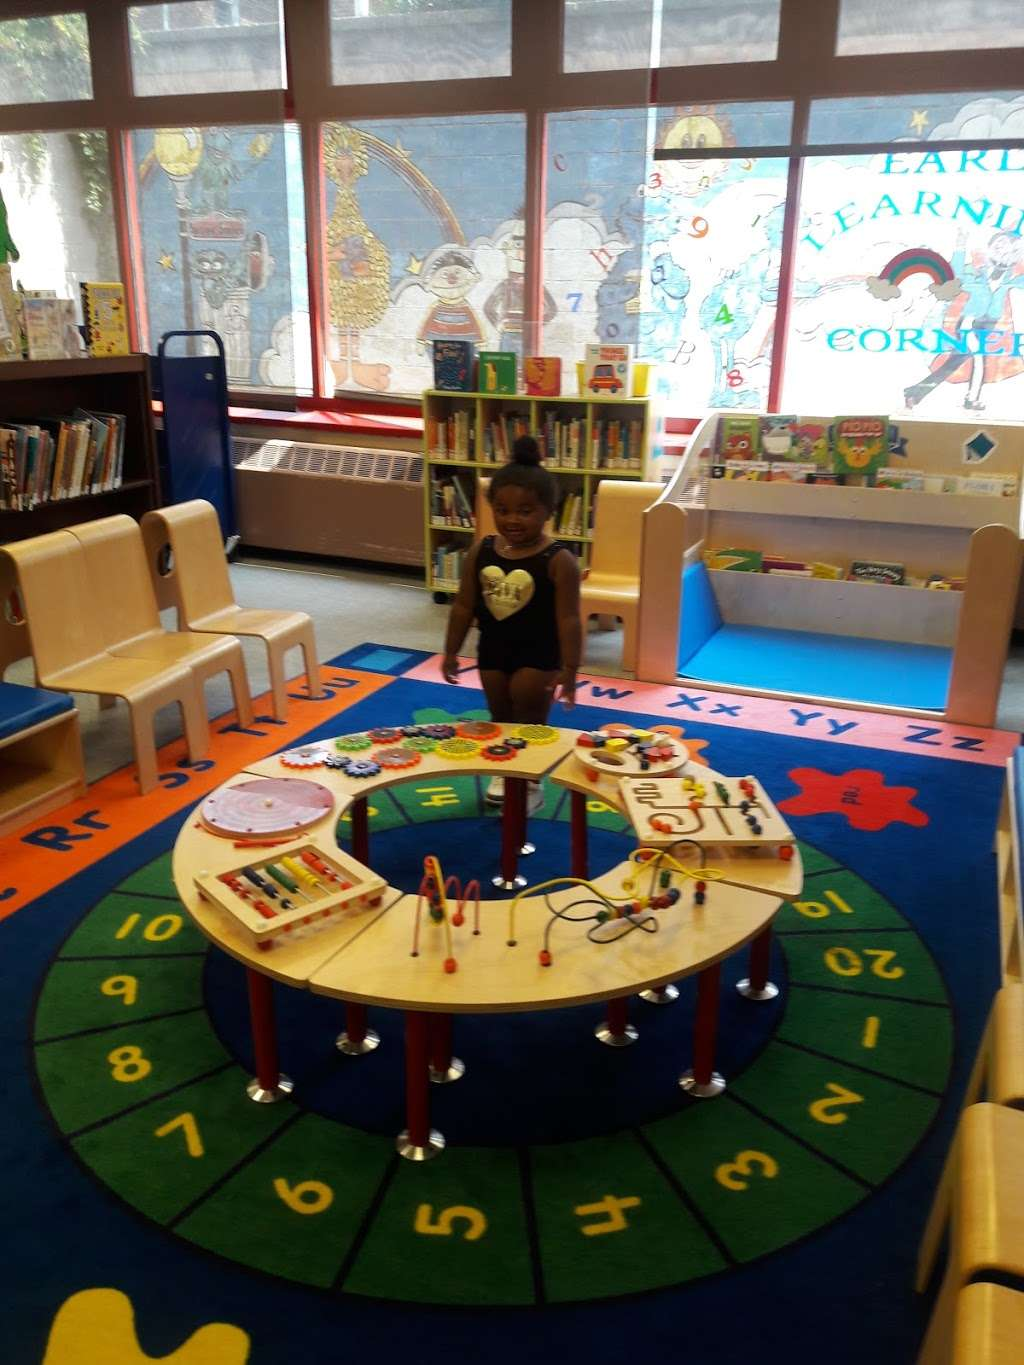 Throgs Neck Library - library  | Photo 1 of 7 | Address: 3025 Cross Bronx Expy, The Bronx, NY 10465, USA | Phone: (718) 792-2612